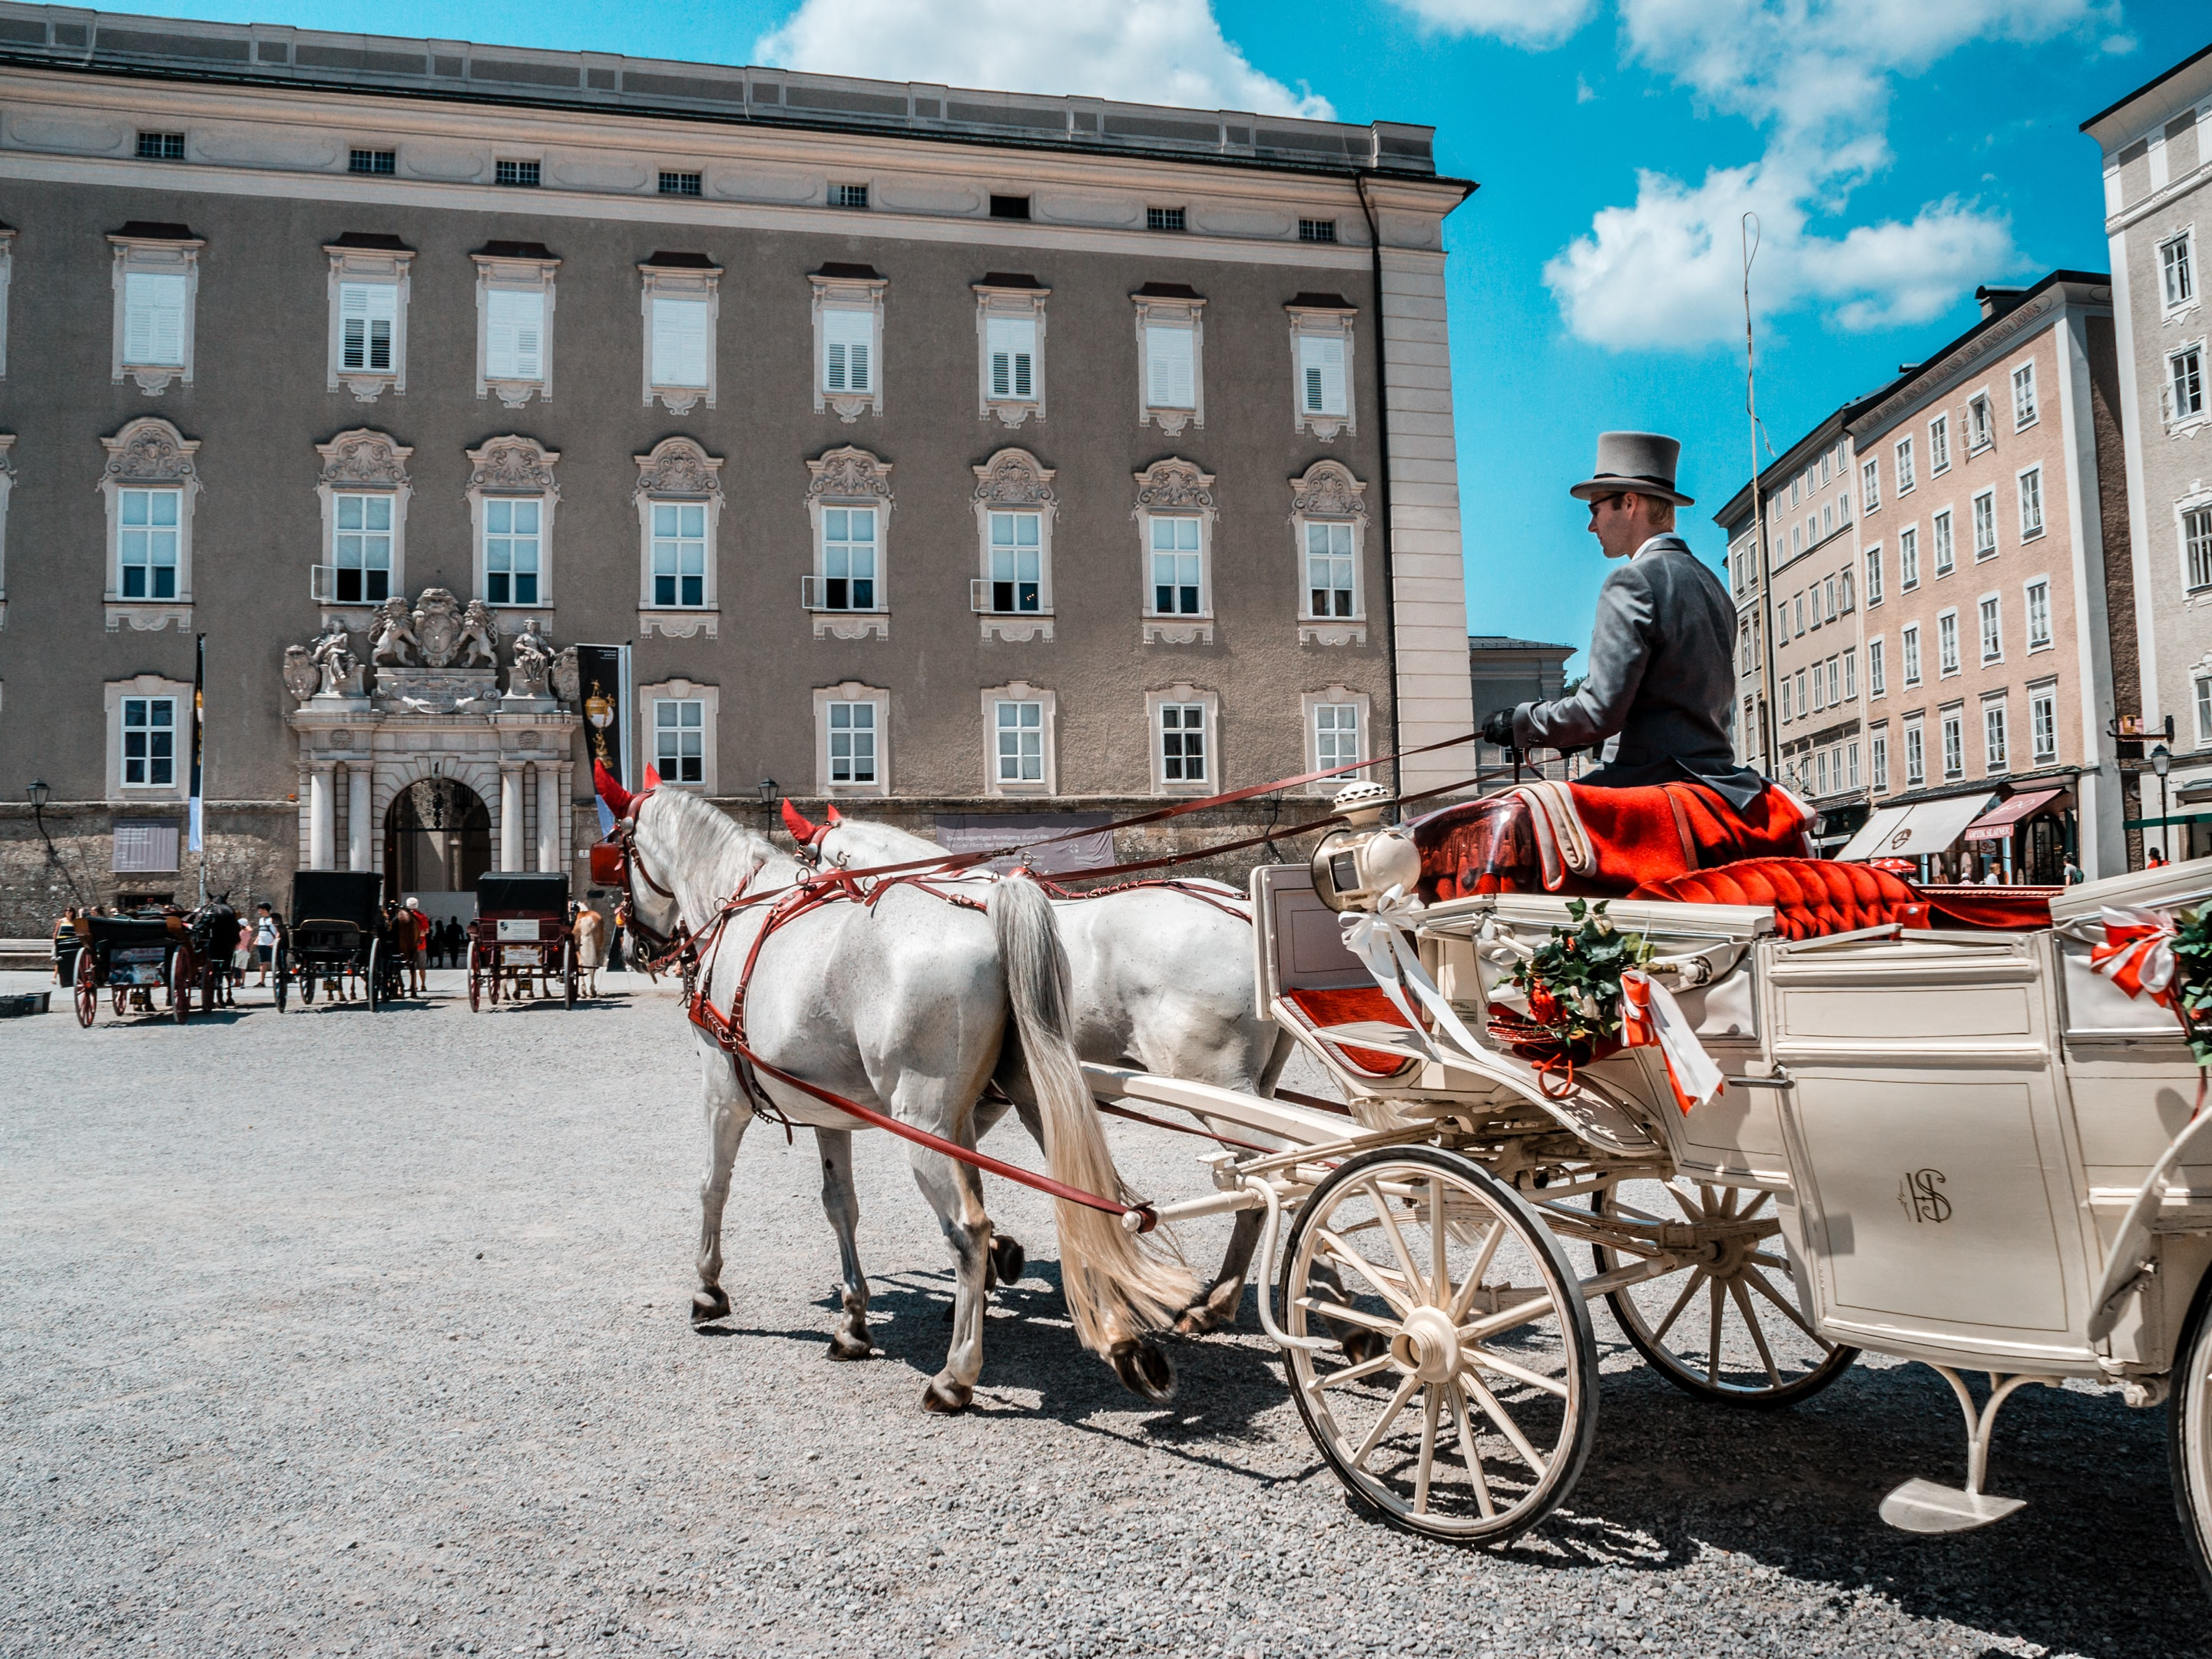 man riding on carriage